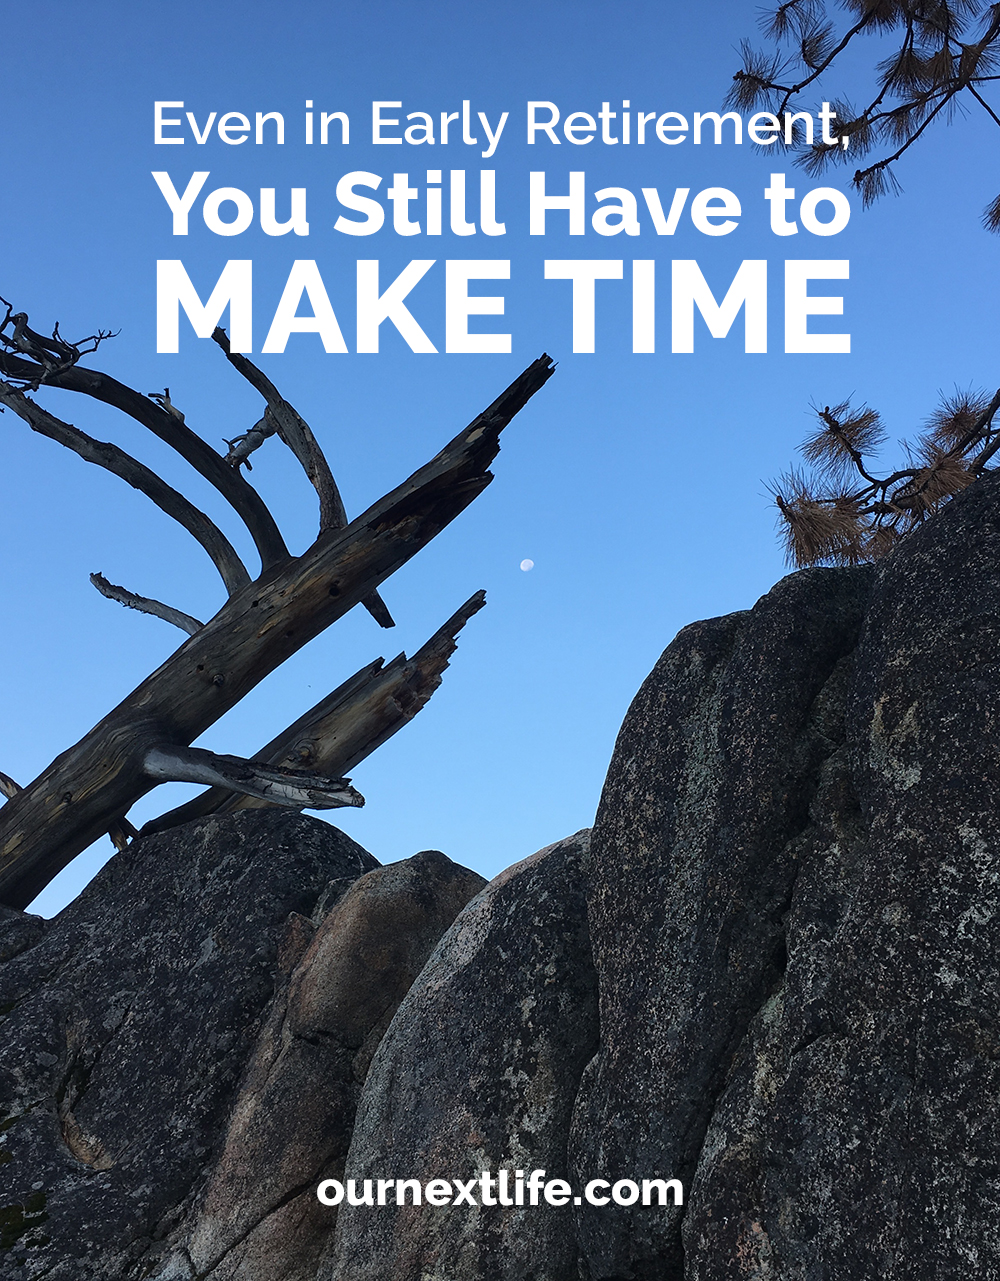 Even in Early Retirement, You Still Have to Make Time // Make Time: How to Focus on What Matters Every Day by Jake Knapp and John Zeratsky // Our Next Life // financia